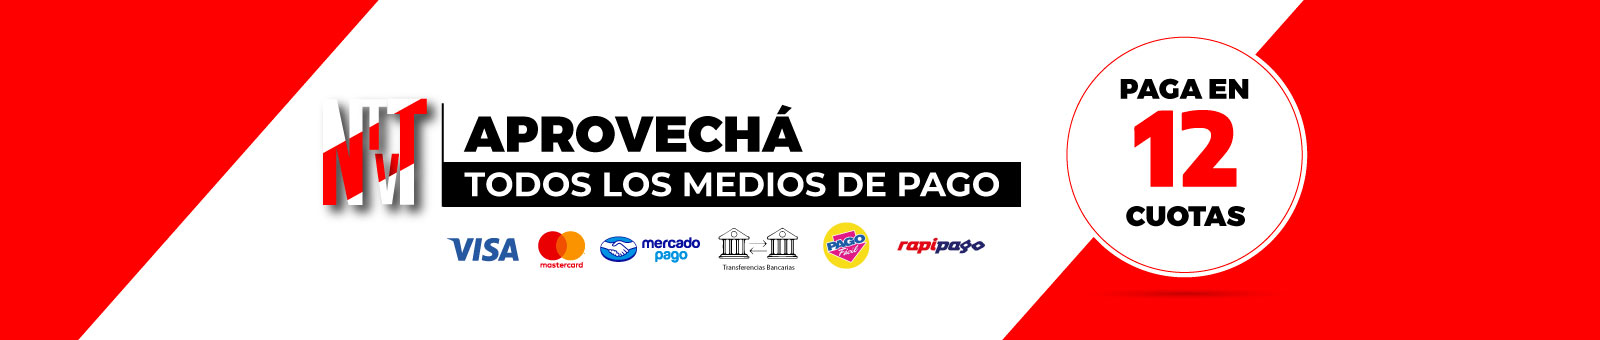 Banners-Web-river5